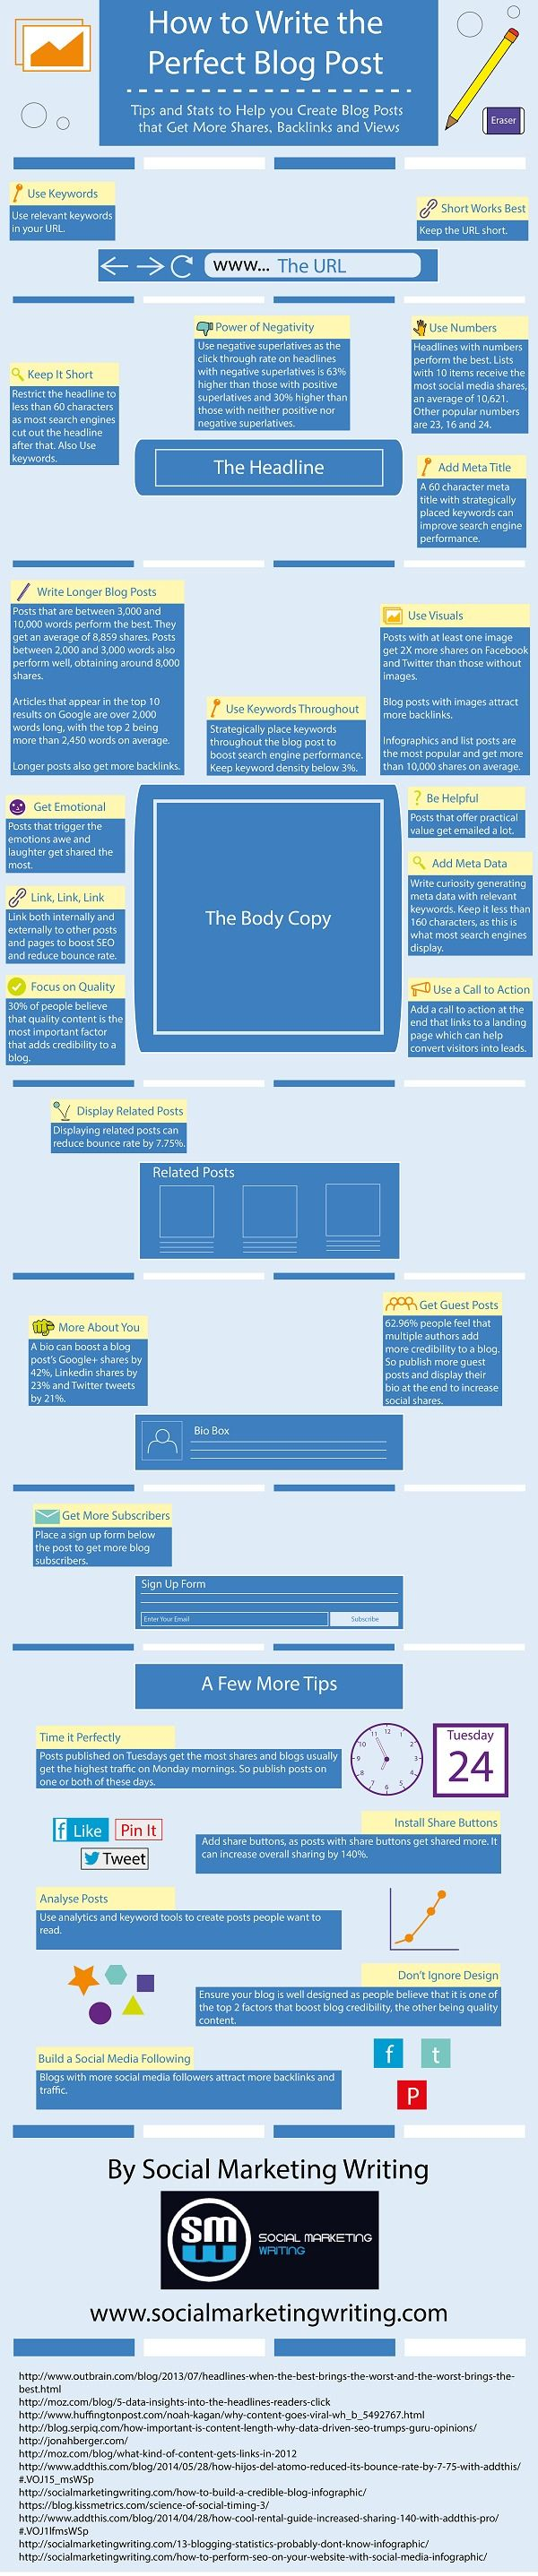 How to Write the Perfect Blog Post [Infographic] - Social Marketing Writing